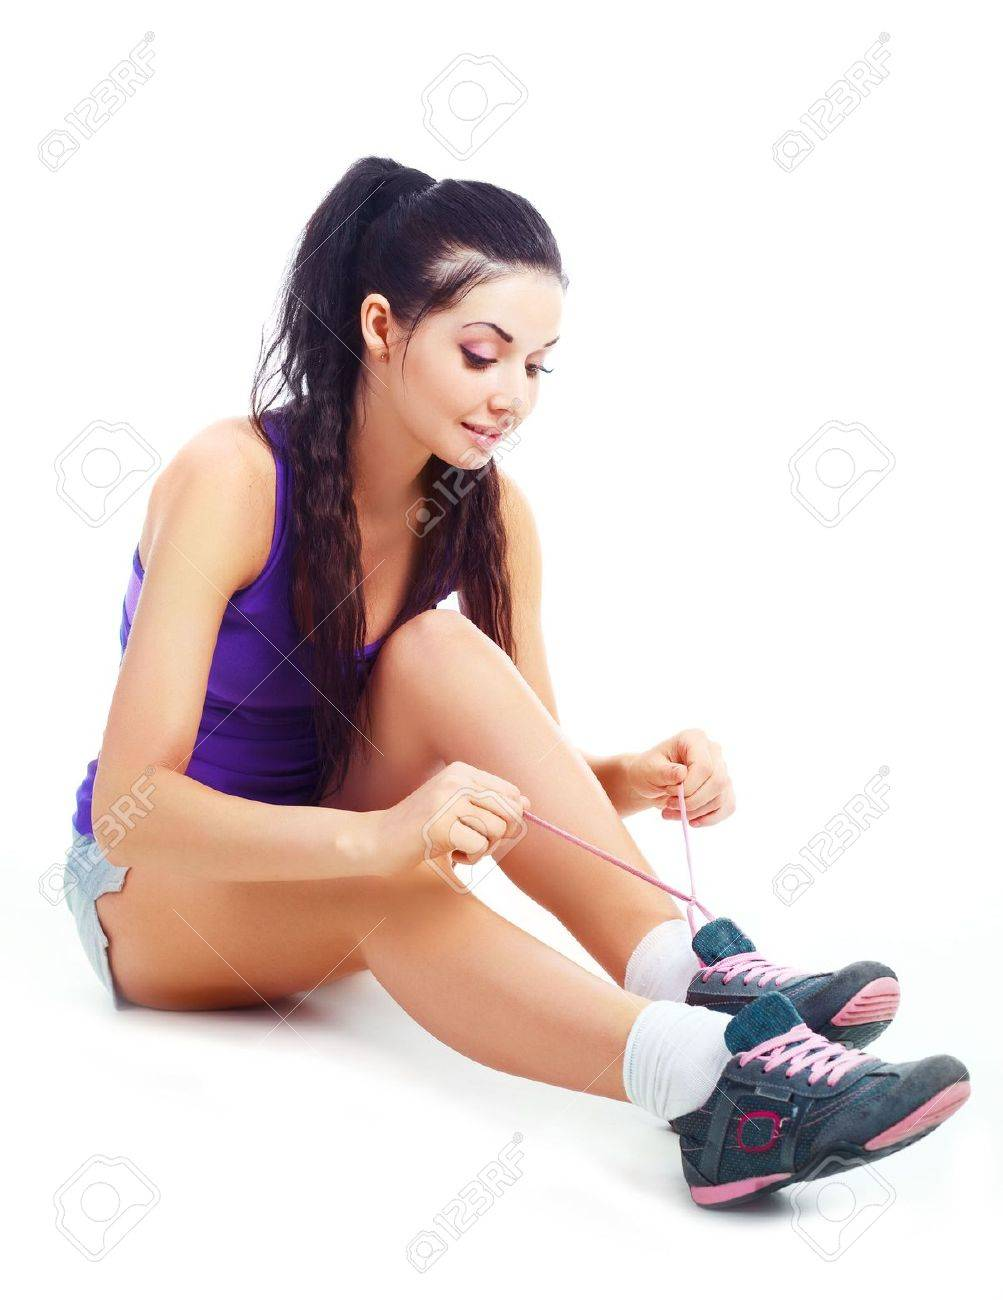 pretty brunette girl wearing sports clothes tying shoelaces Stock Photo - 8191328